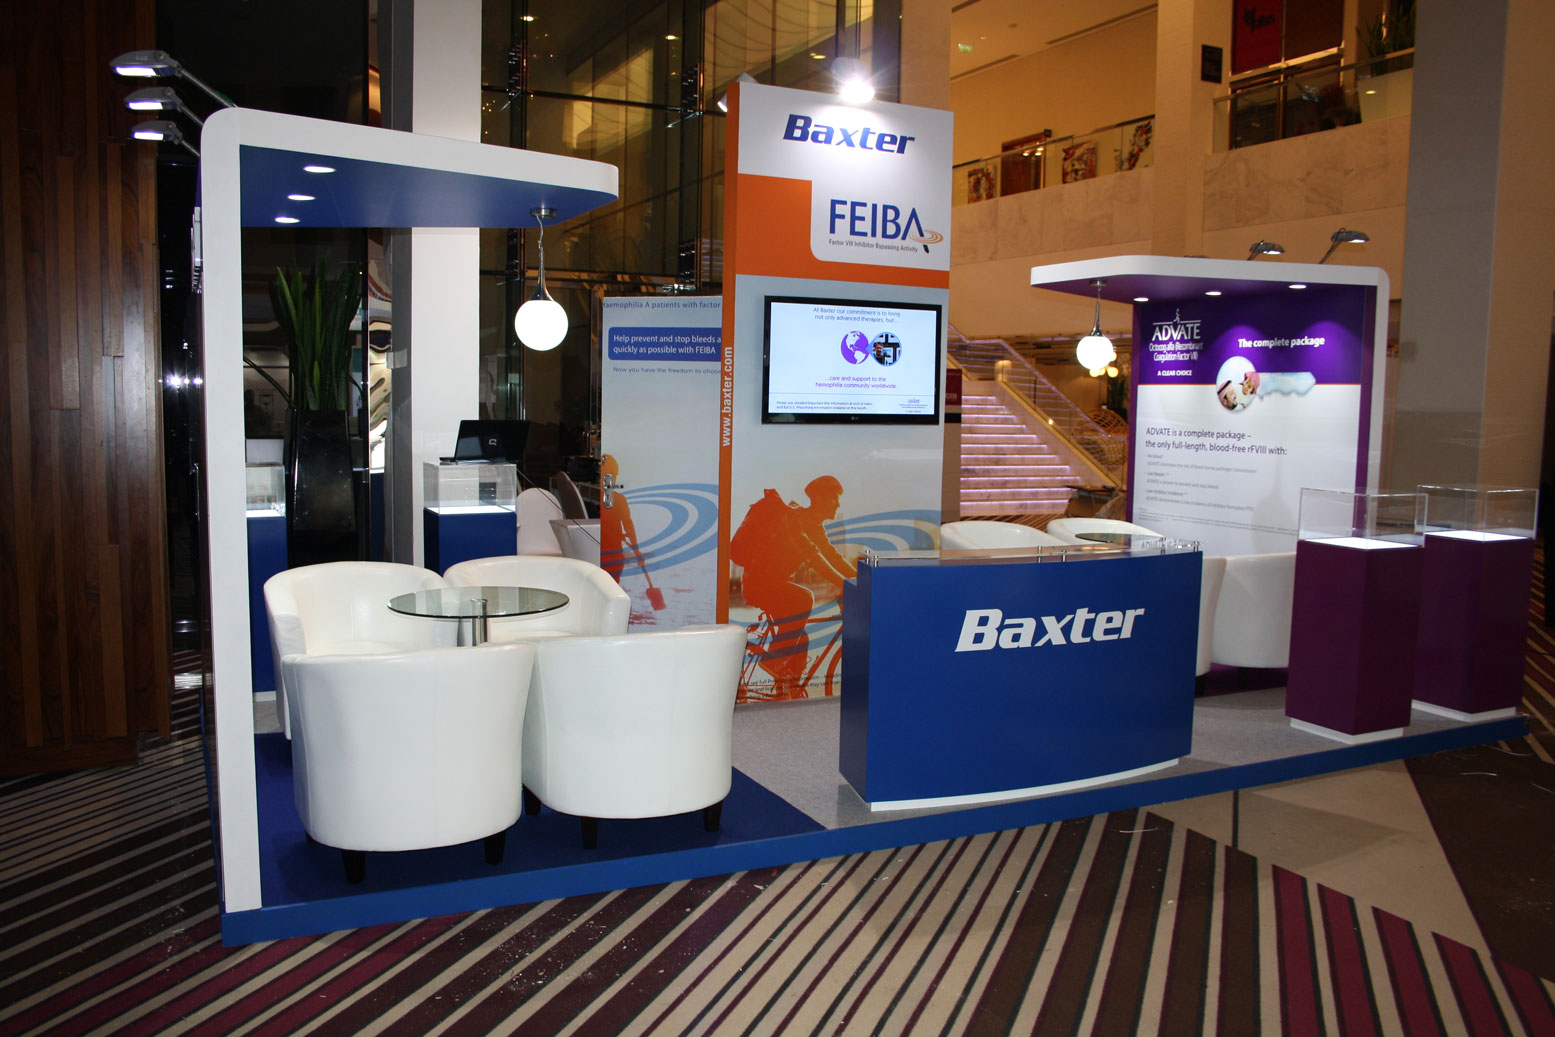 Baxter Exhibition Stand 2 by Cornerstone